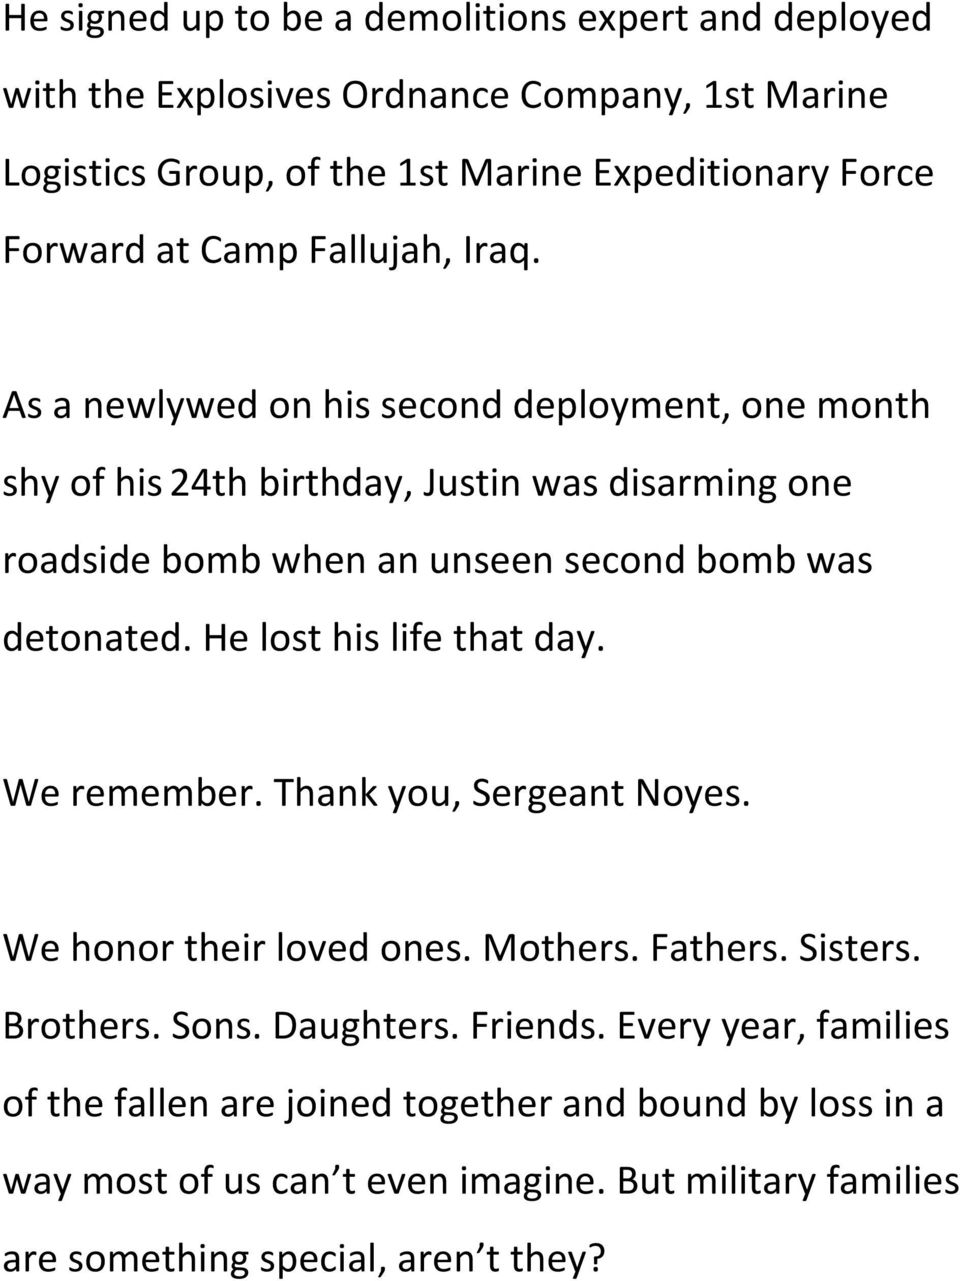 As a newlywed on his second deployment, one month shy of his 24th birthday, Justin was disarming one roadside bomb when an unseen second bomb was detonated.